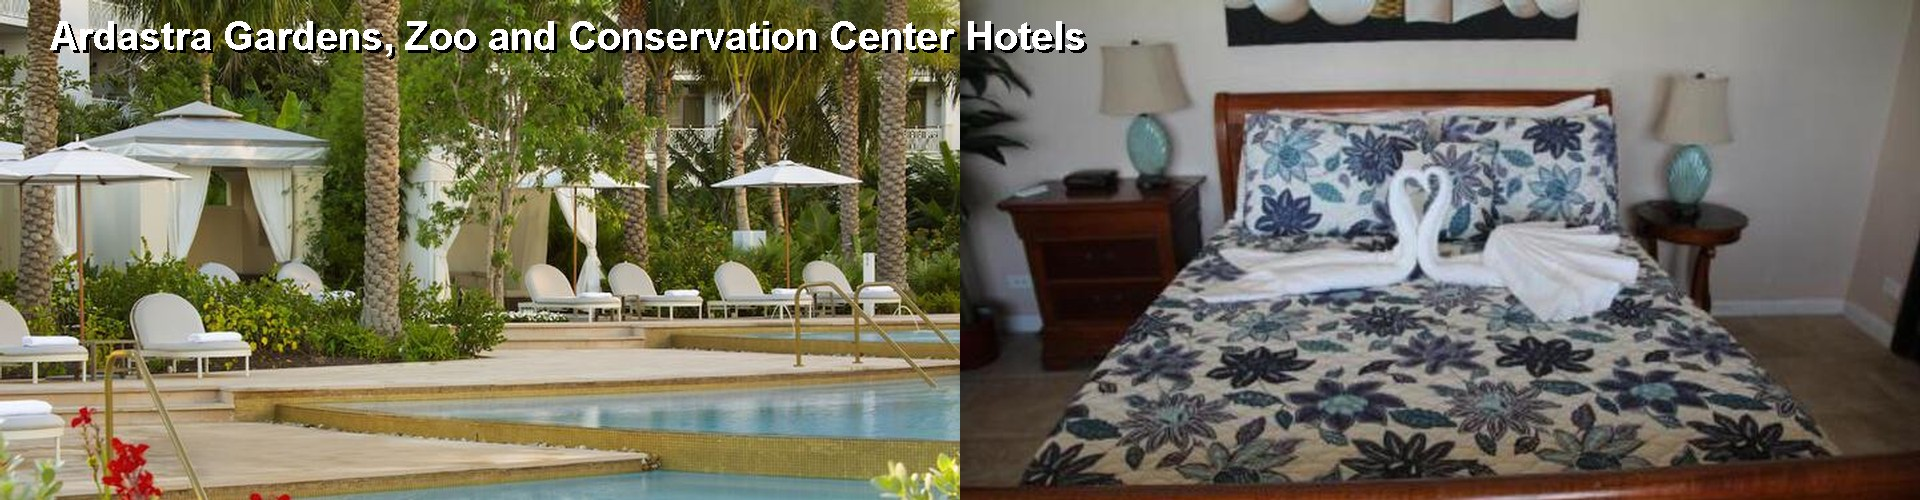 5 Best Hotels near Ardastra Gardens, Zoo and Conservation Center